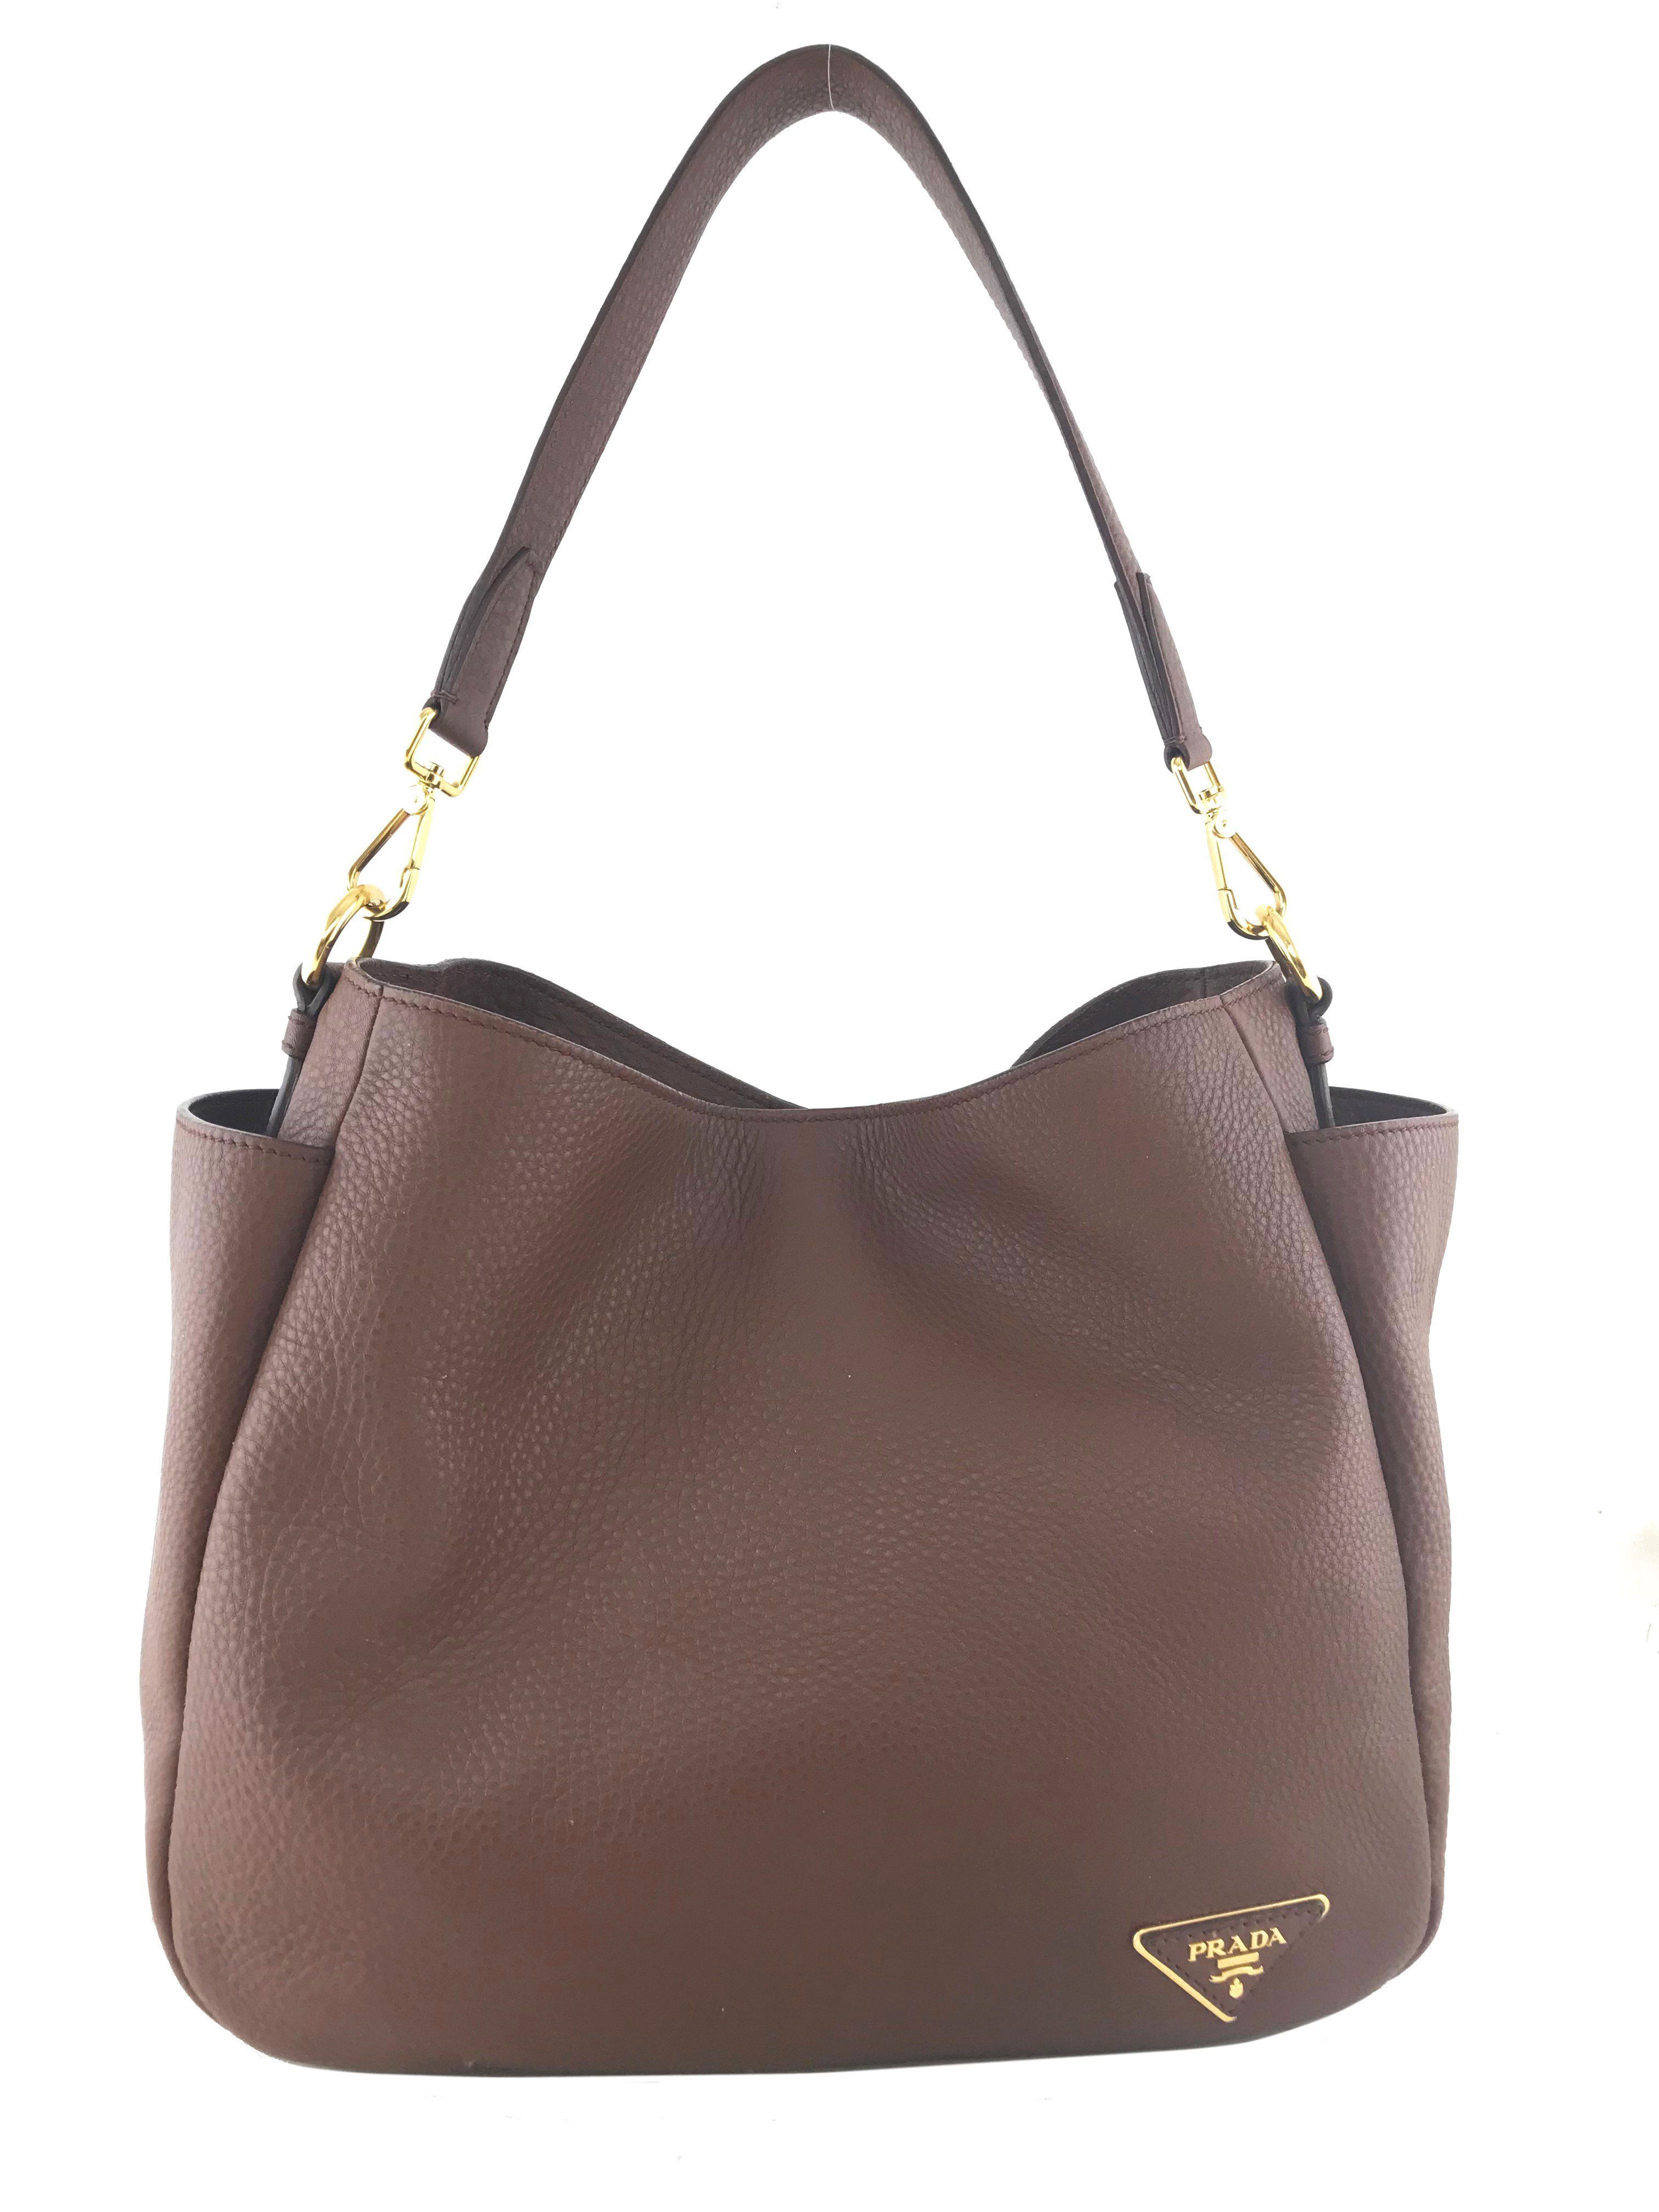 Prada Vitello Daino Leather Side Pocket Hobo Bag Handbags